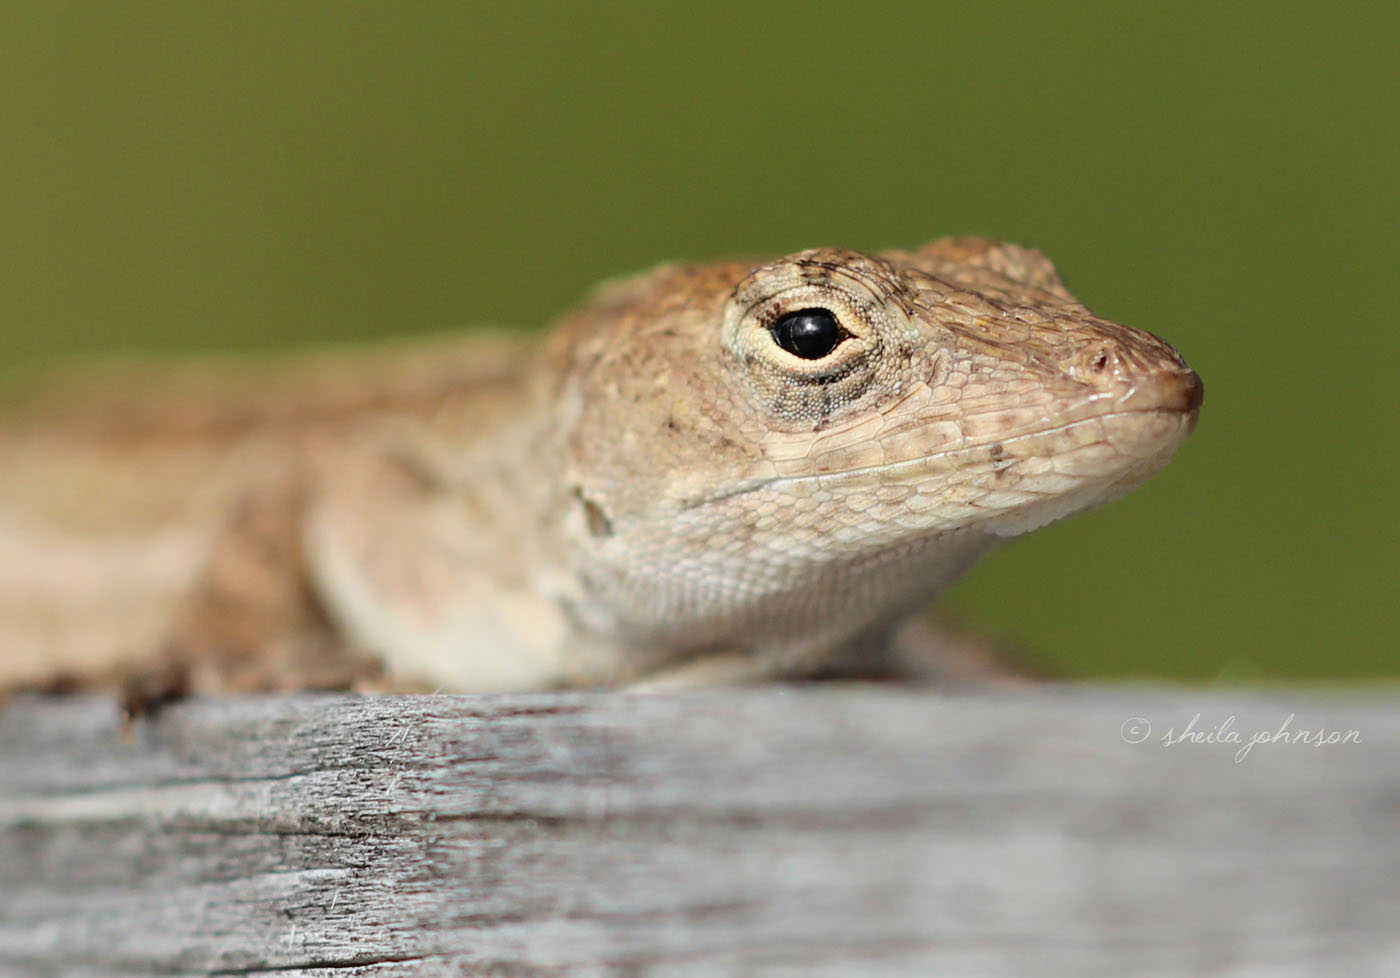 The Brown Anole lizard, native to Cuba and the Bahamas, was introduced to the United States in 1970s. We often confuse it with the native species, the green Carolina Anole, which can change color to brown. The most distinctive difference is that the Brown Anole is patterned and the Carolina is not.